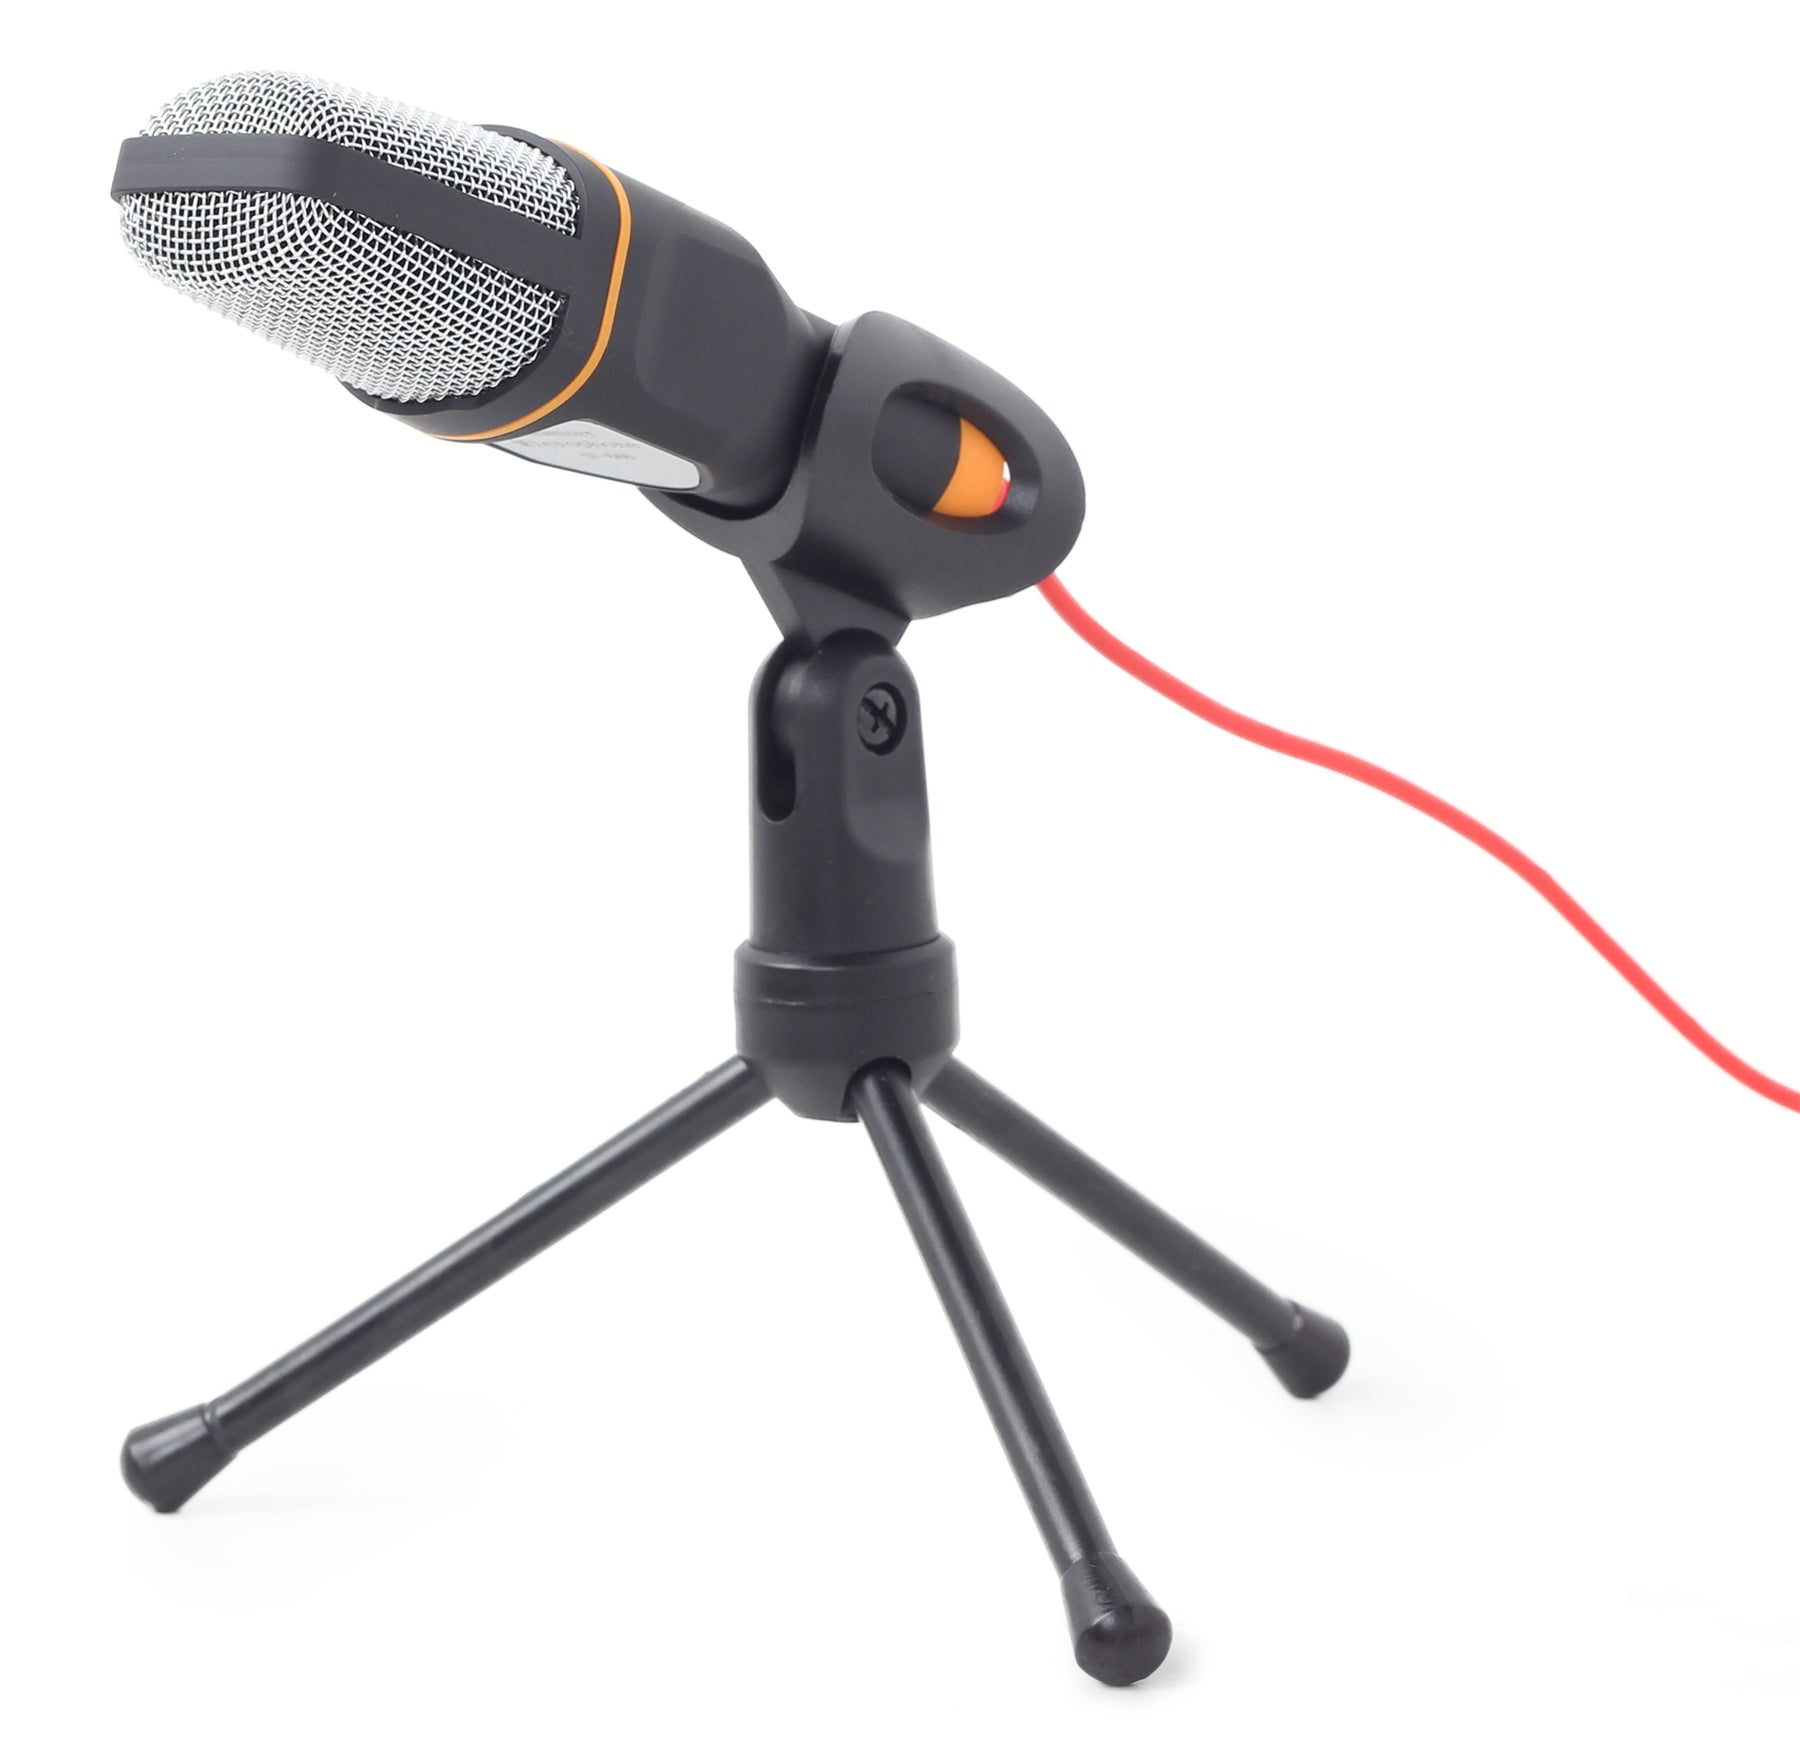 Gembird Desktop Microphone With Tripod - Black - MIC-DESK-01